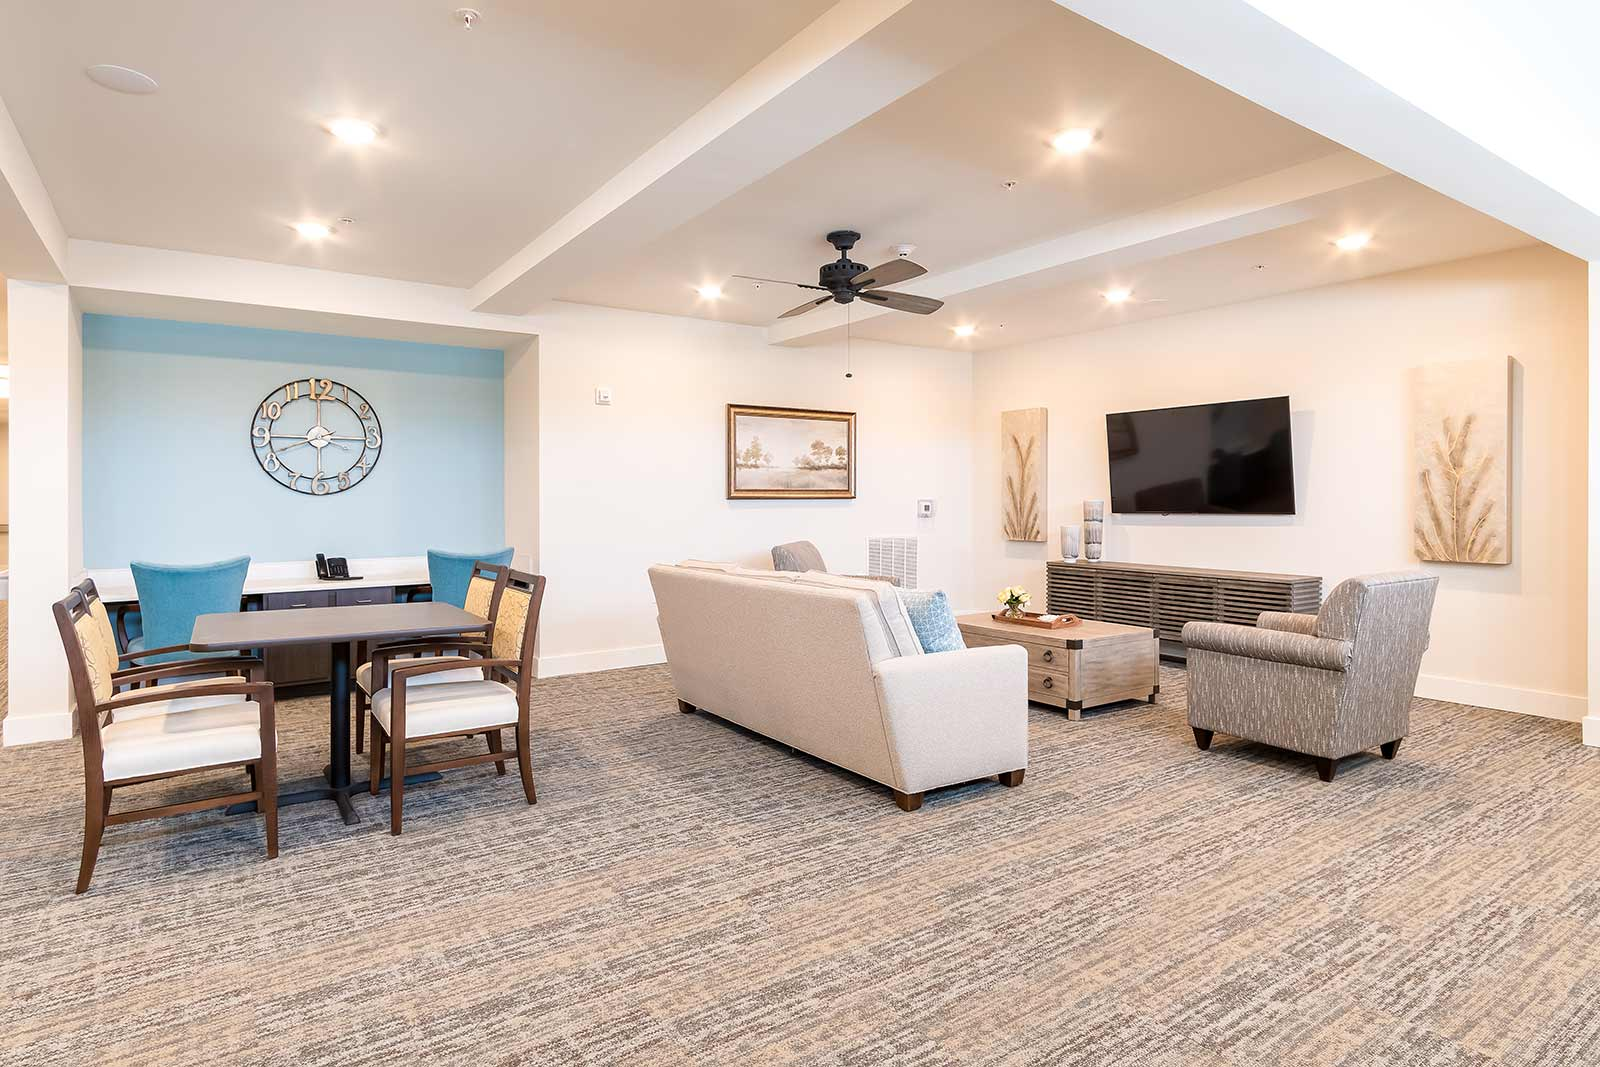 Lounge area with TV, couches, table and chairs in our Plant City FL assisted living and memory care community